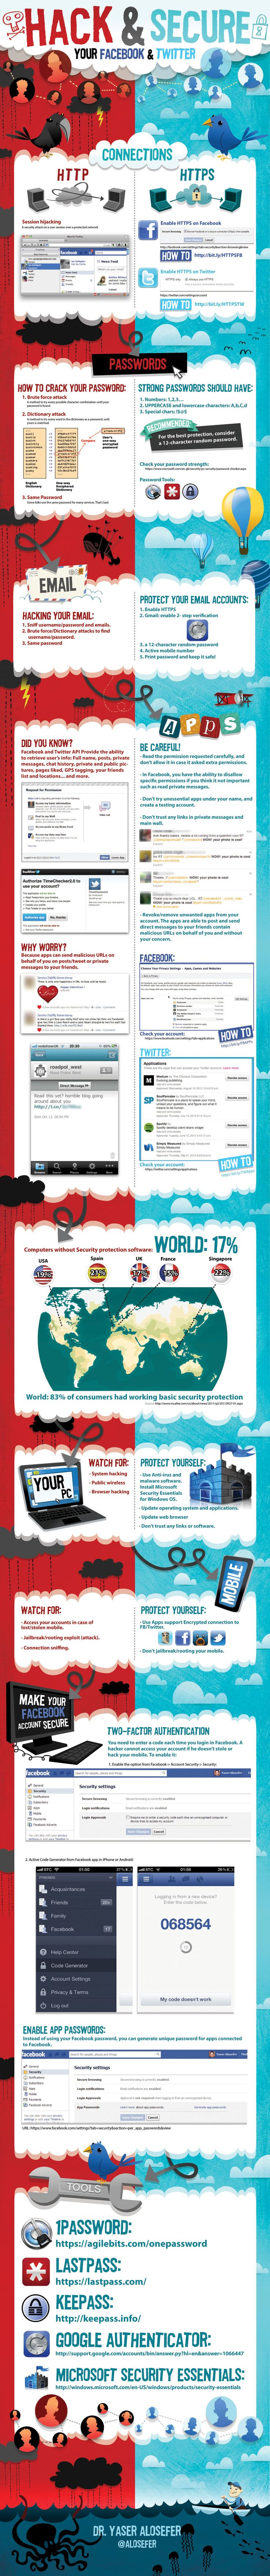 A new infographic dives deeply into Facebook and Twitter to expose how an individual's accounts on the social networks can be hacked - and secured.    The infographic designed by Dr Yaser Alosefer and published on Visual.ly looks at connections, passwords, email, and apps, how each of those elements can be hacked, and how each of those elements can be made more secure.